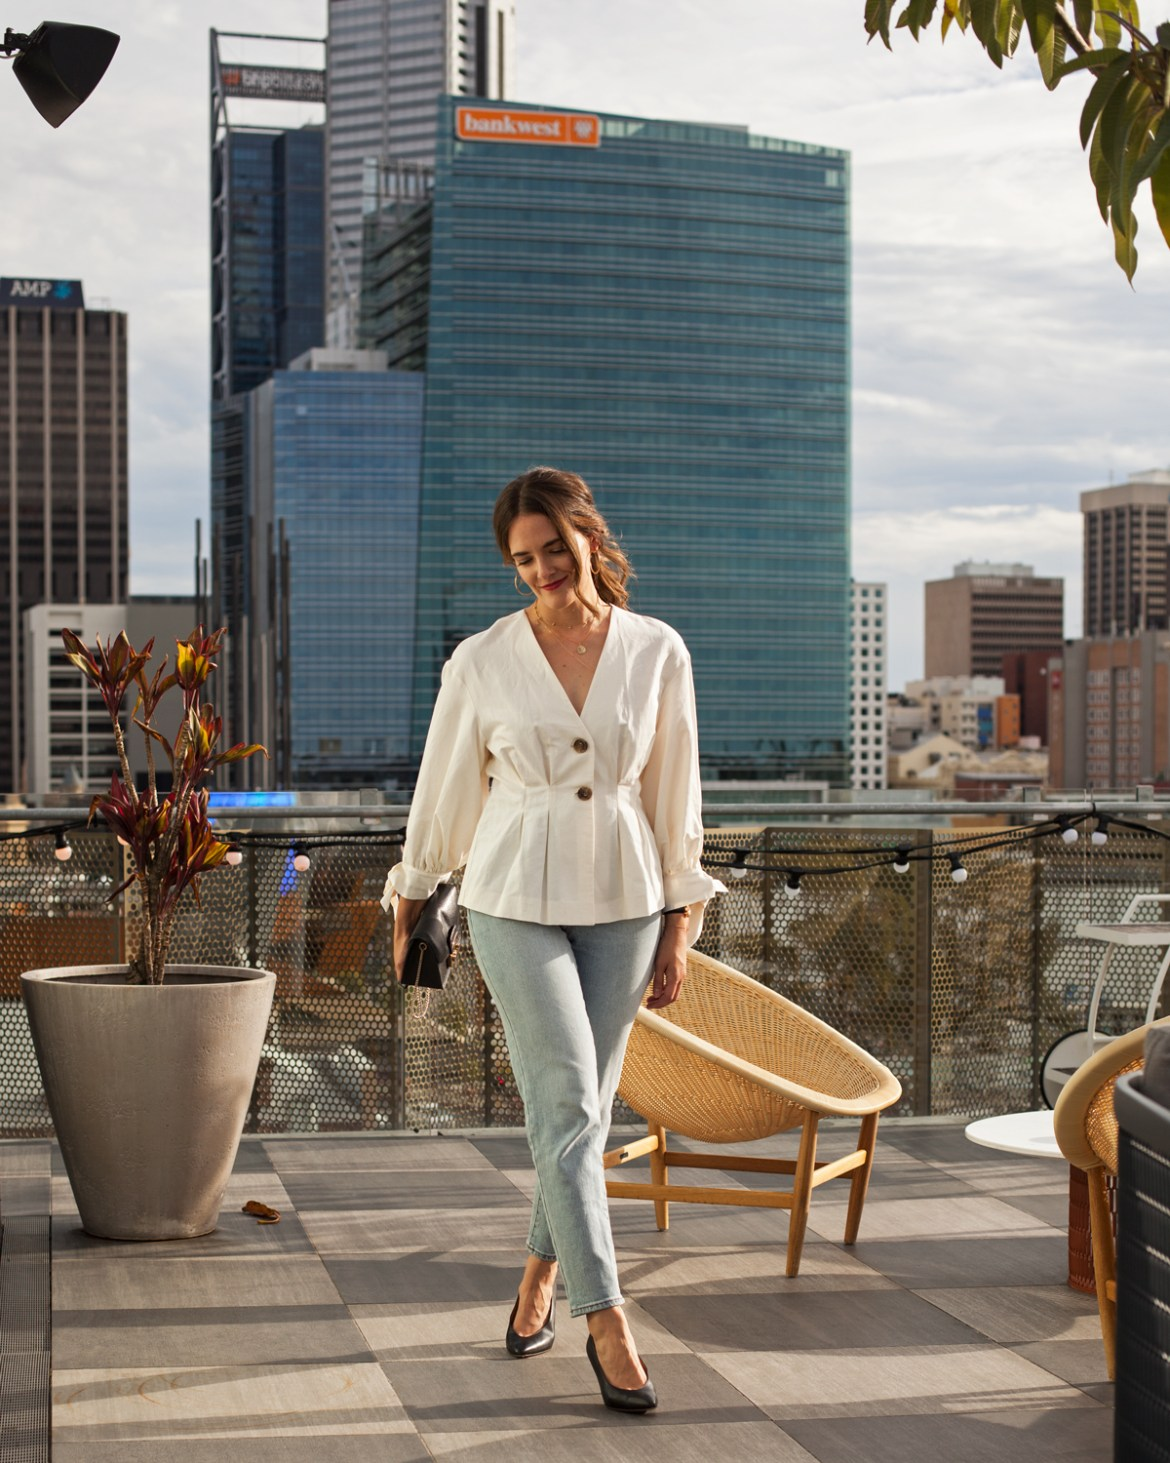 Zara top and Abrand jeans, Furla bag worn by Jenelle from Inspiring Wit blog on the rooftop of Alex Hotel Perth